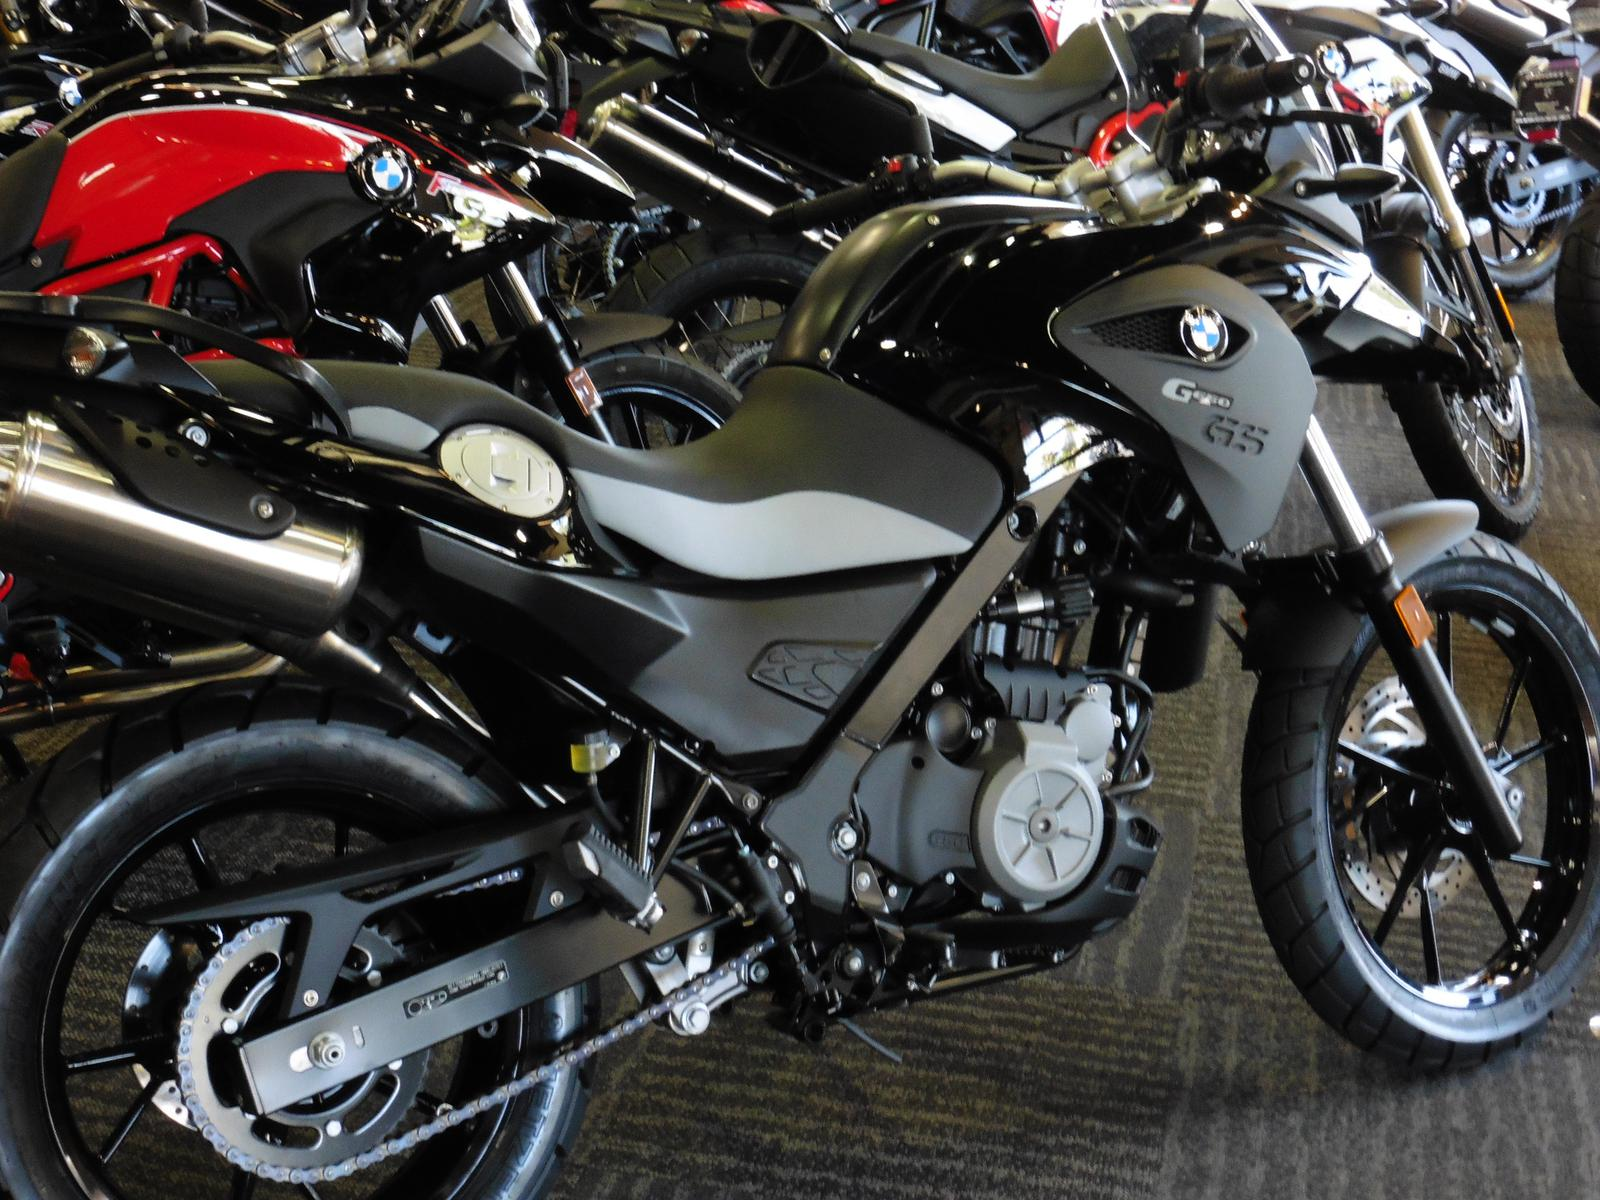 2015 Bmw G 650 Gs Dual Sport Motorcycle From Newbury Park Ca Today